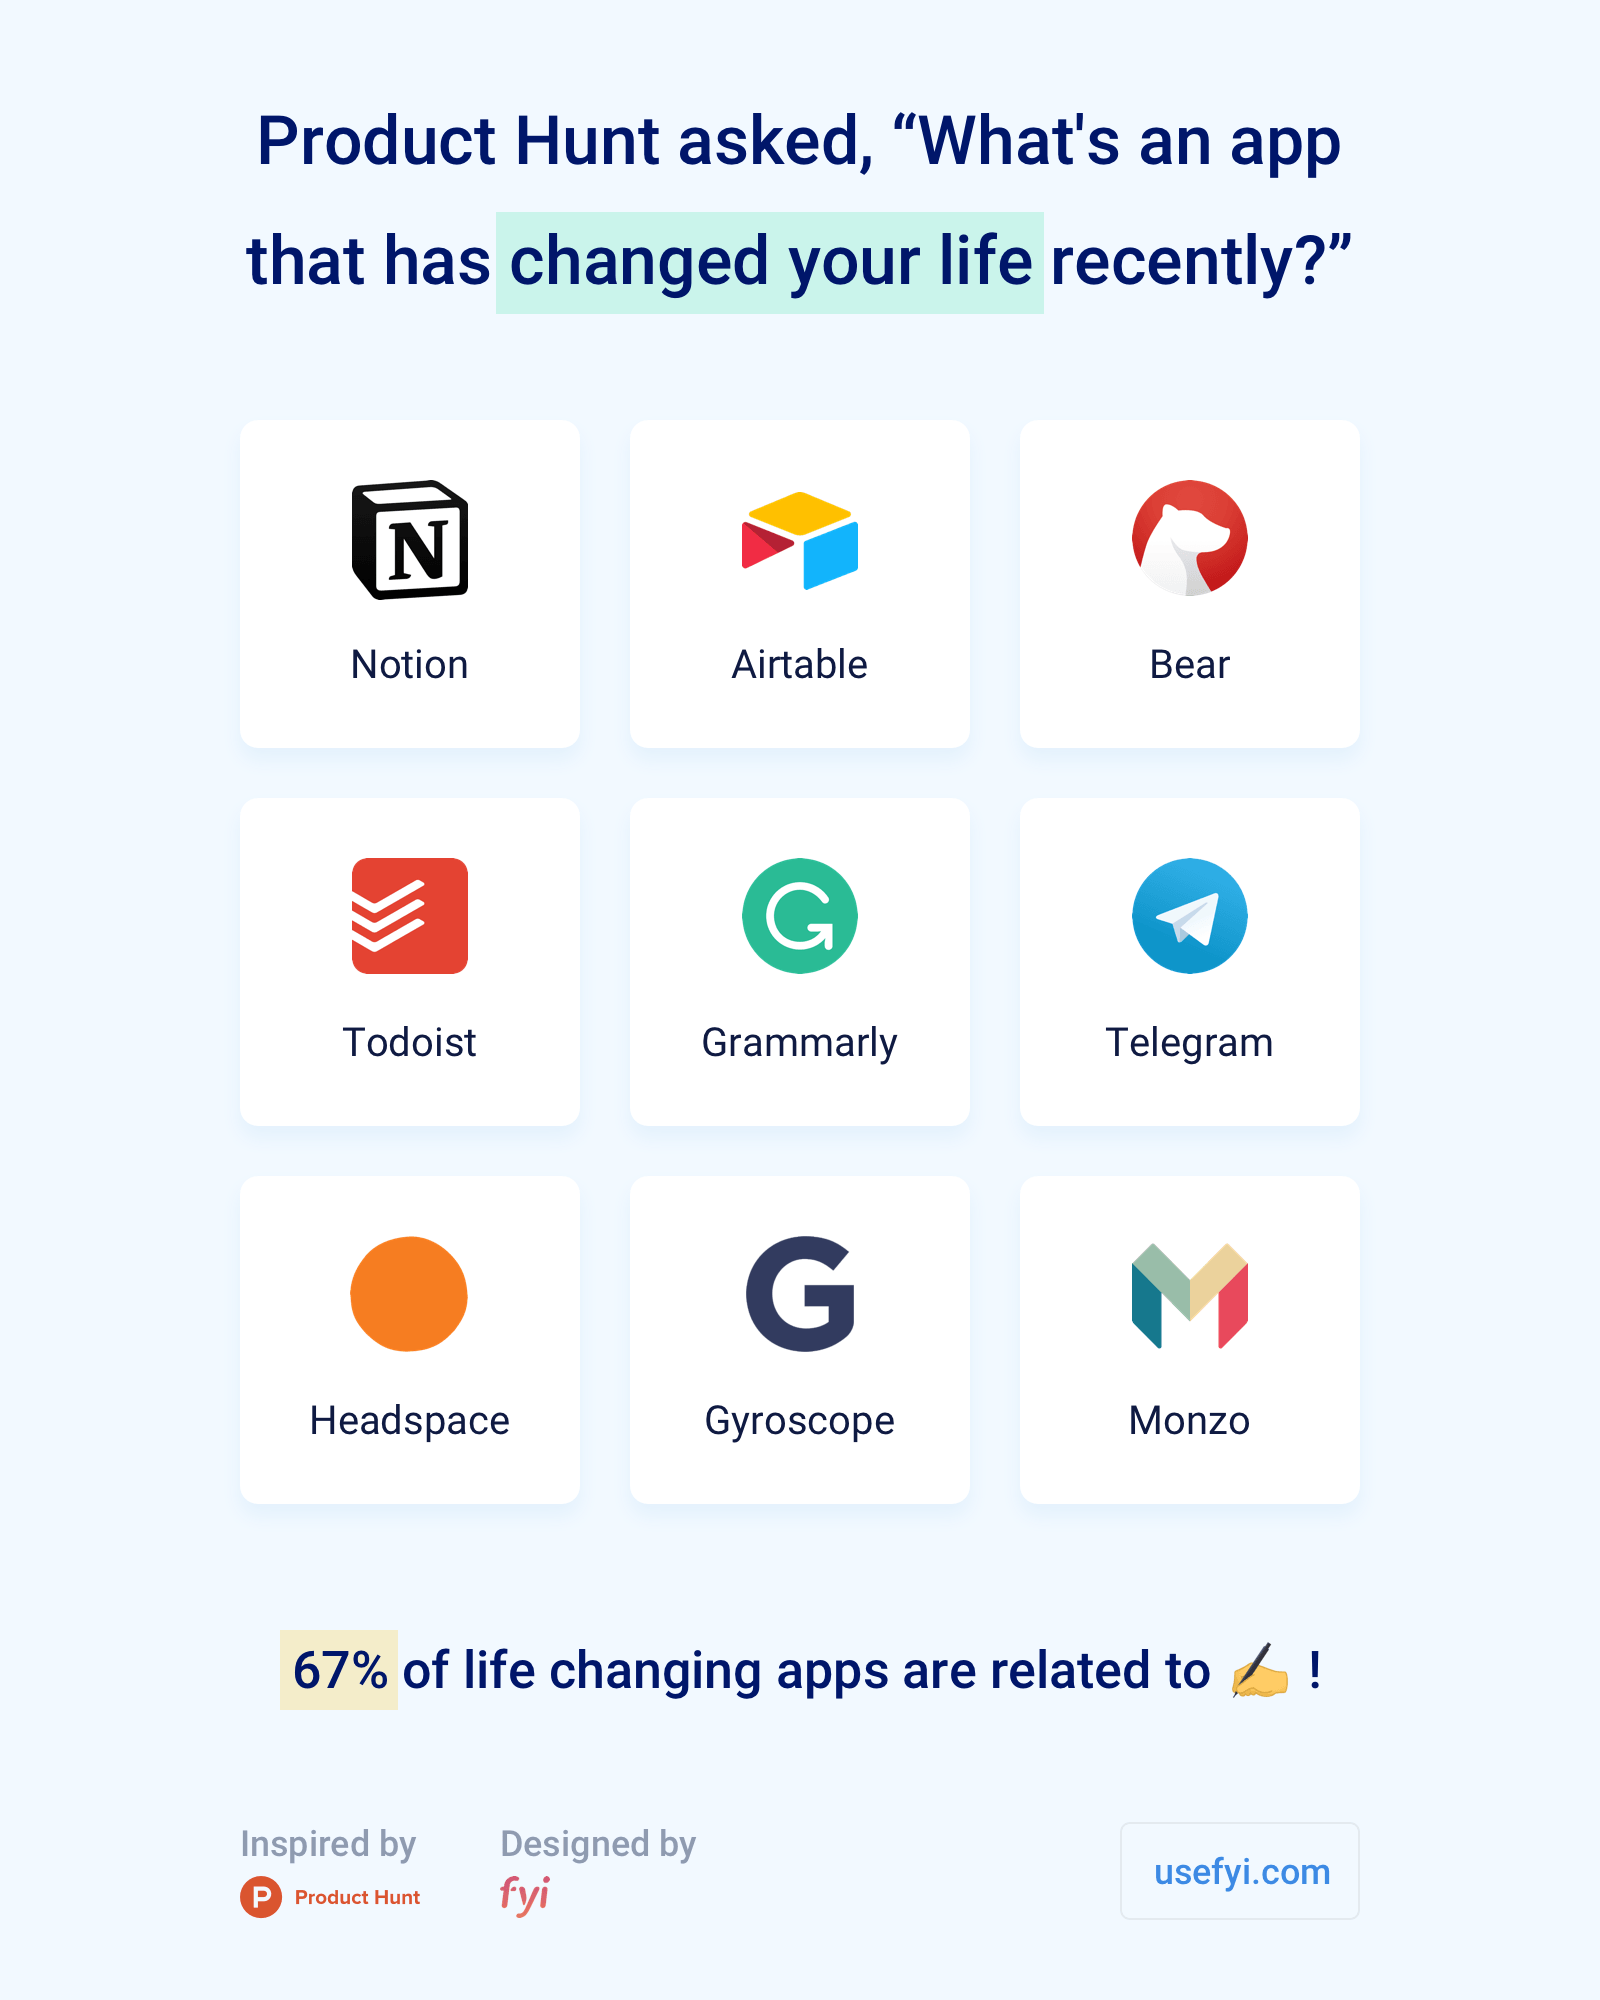 Life changing apps